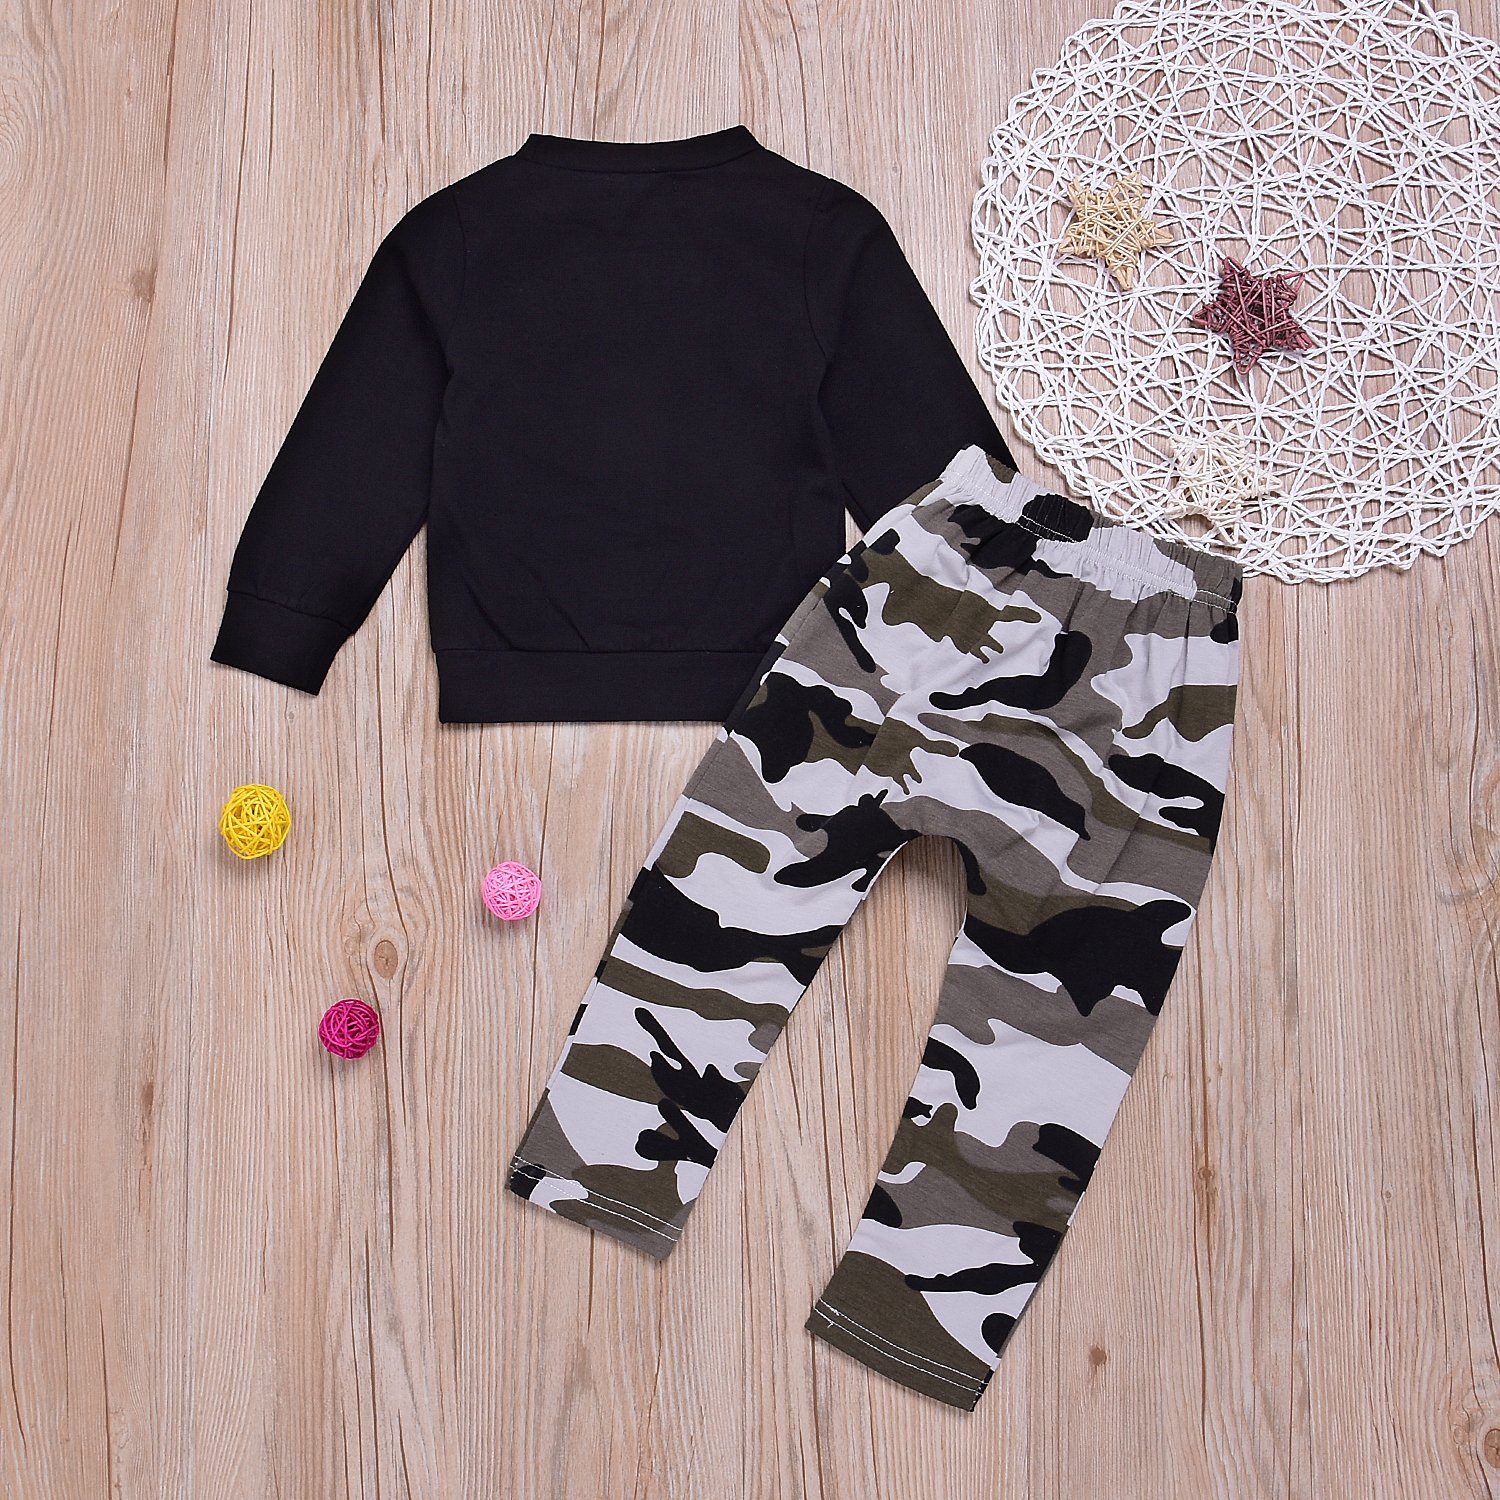 Camo Pants Trousers Outfits Set 1-7T Baby Kids Boys Letters Black T-Shirt Tops